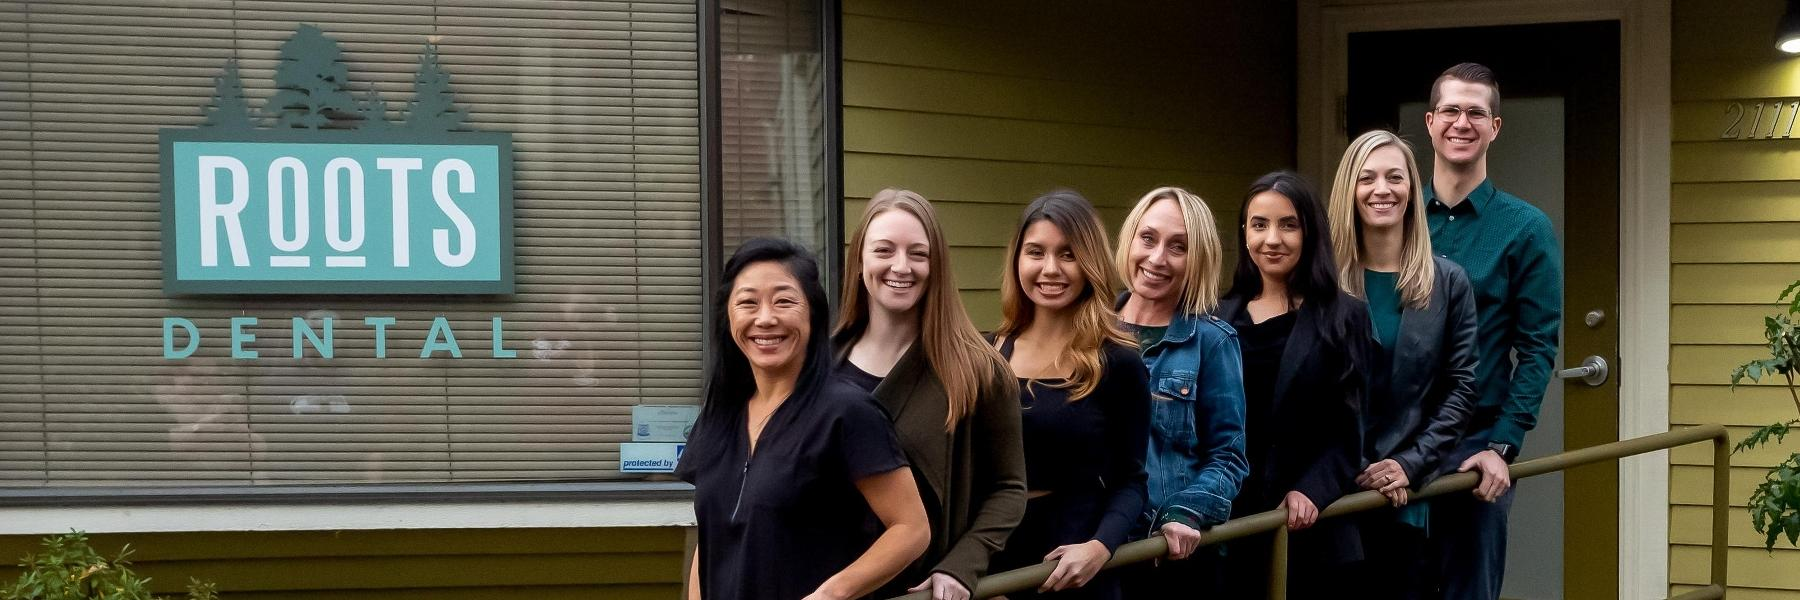 Dr. Hale and his team welcome you to the Hollywood office of Roots Dental.